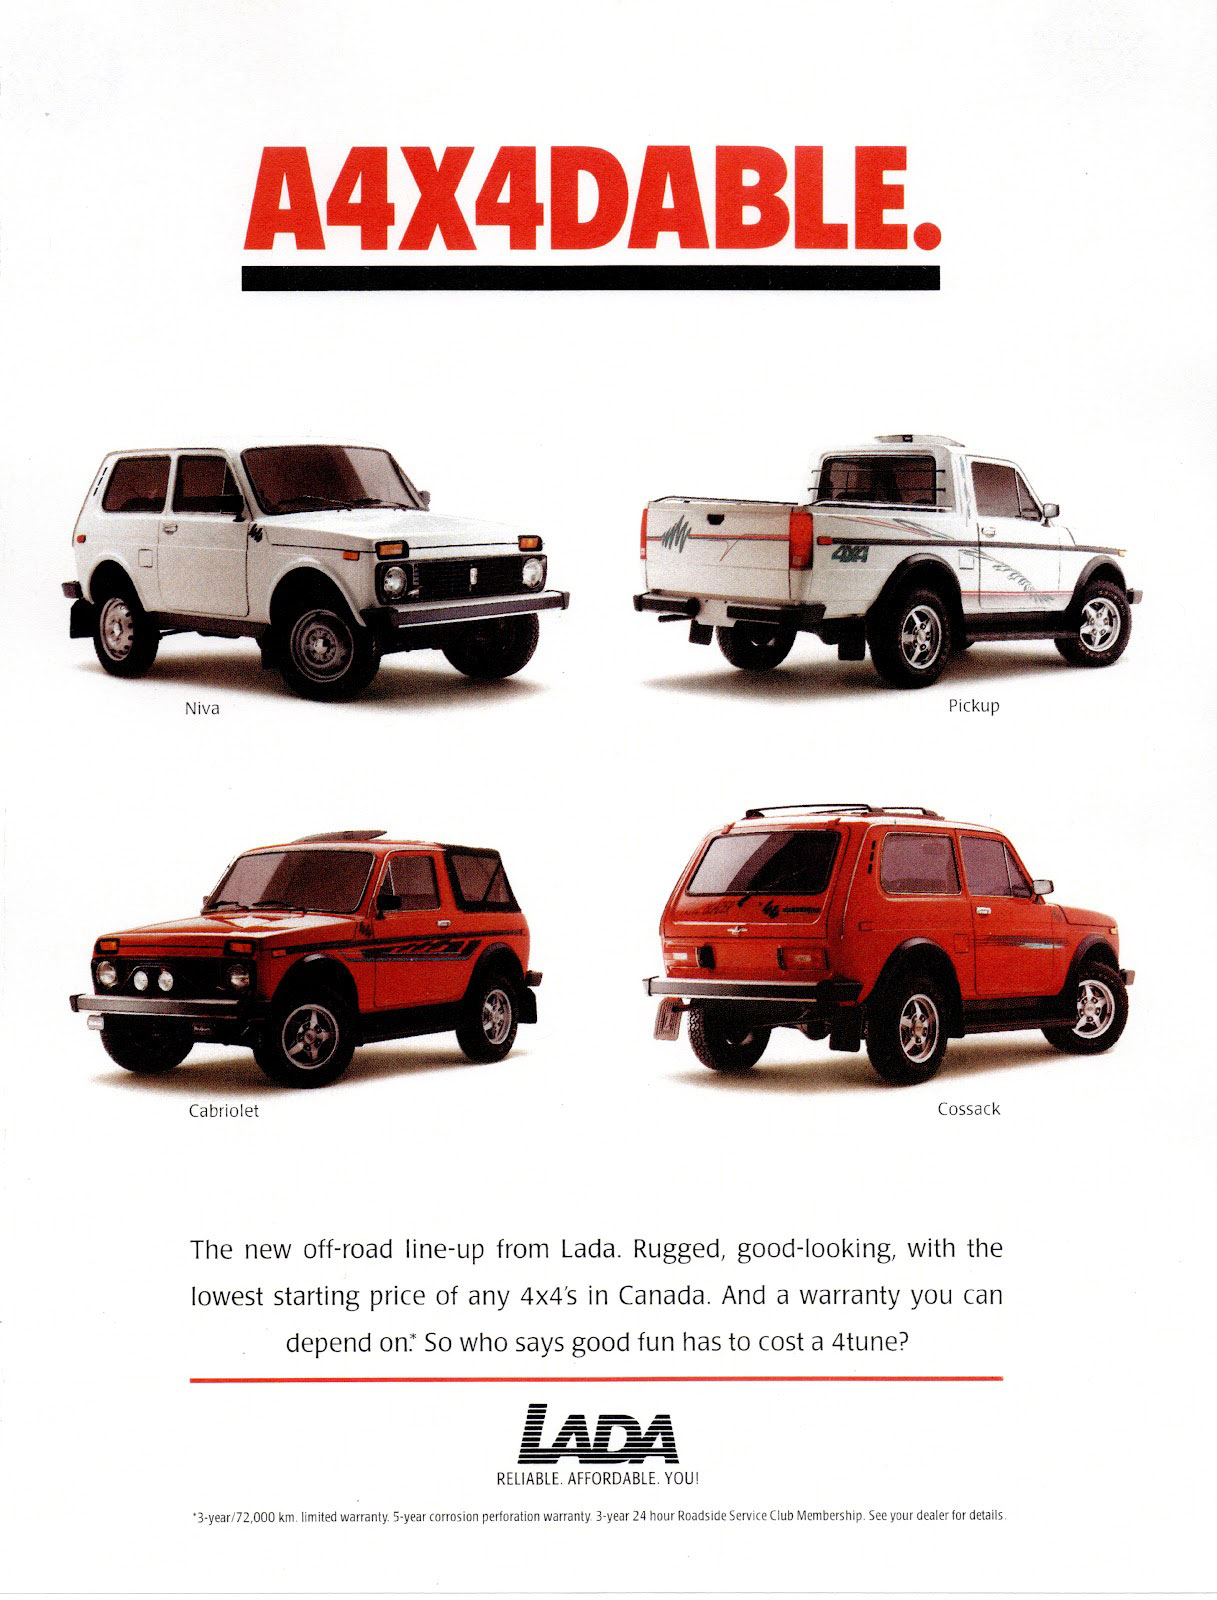 A4X4DABLE. The new off-road line-up from Lada. Rugged, good-looking, with the lowest starting price of any 4x4's in Canada. And a warranty you can depend on: So who says good fun has to cost a 4tune?